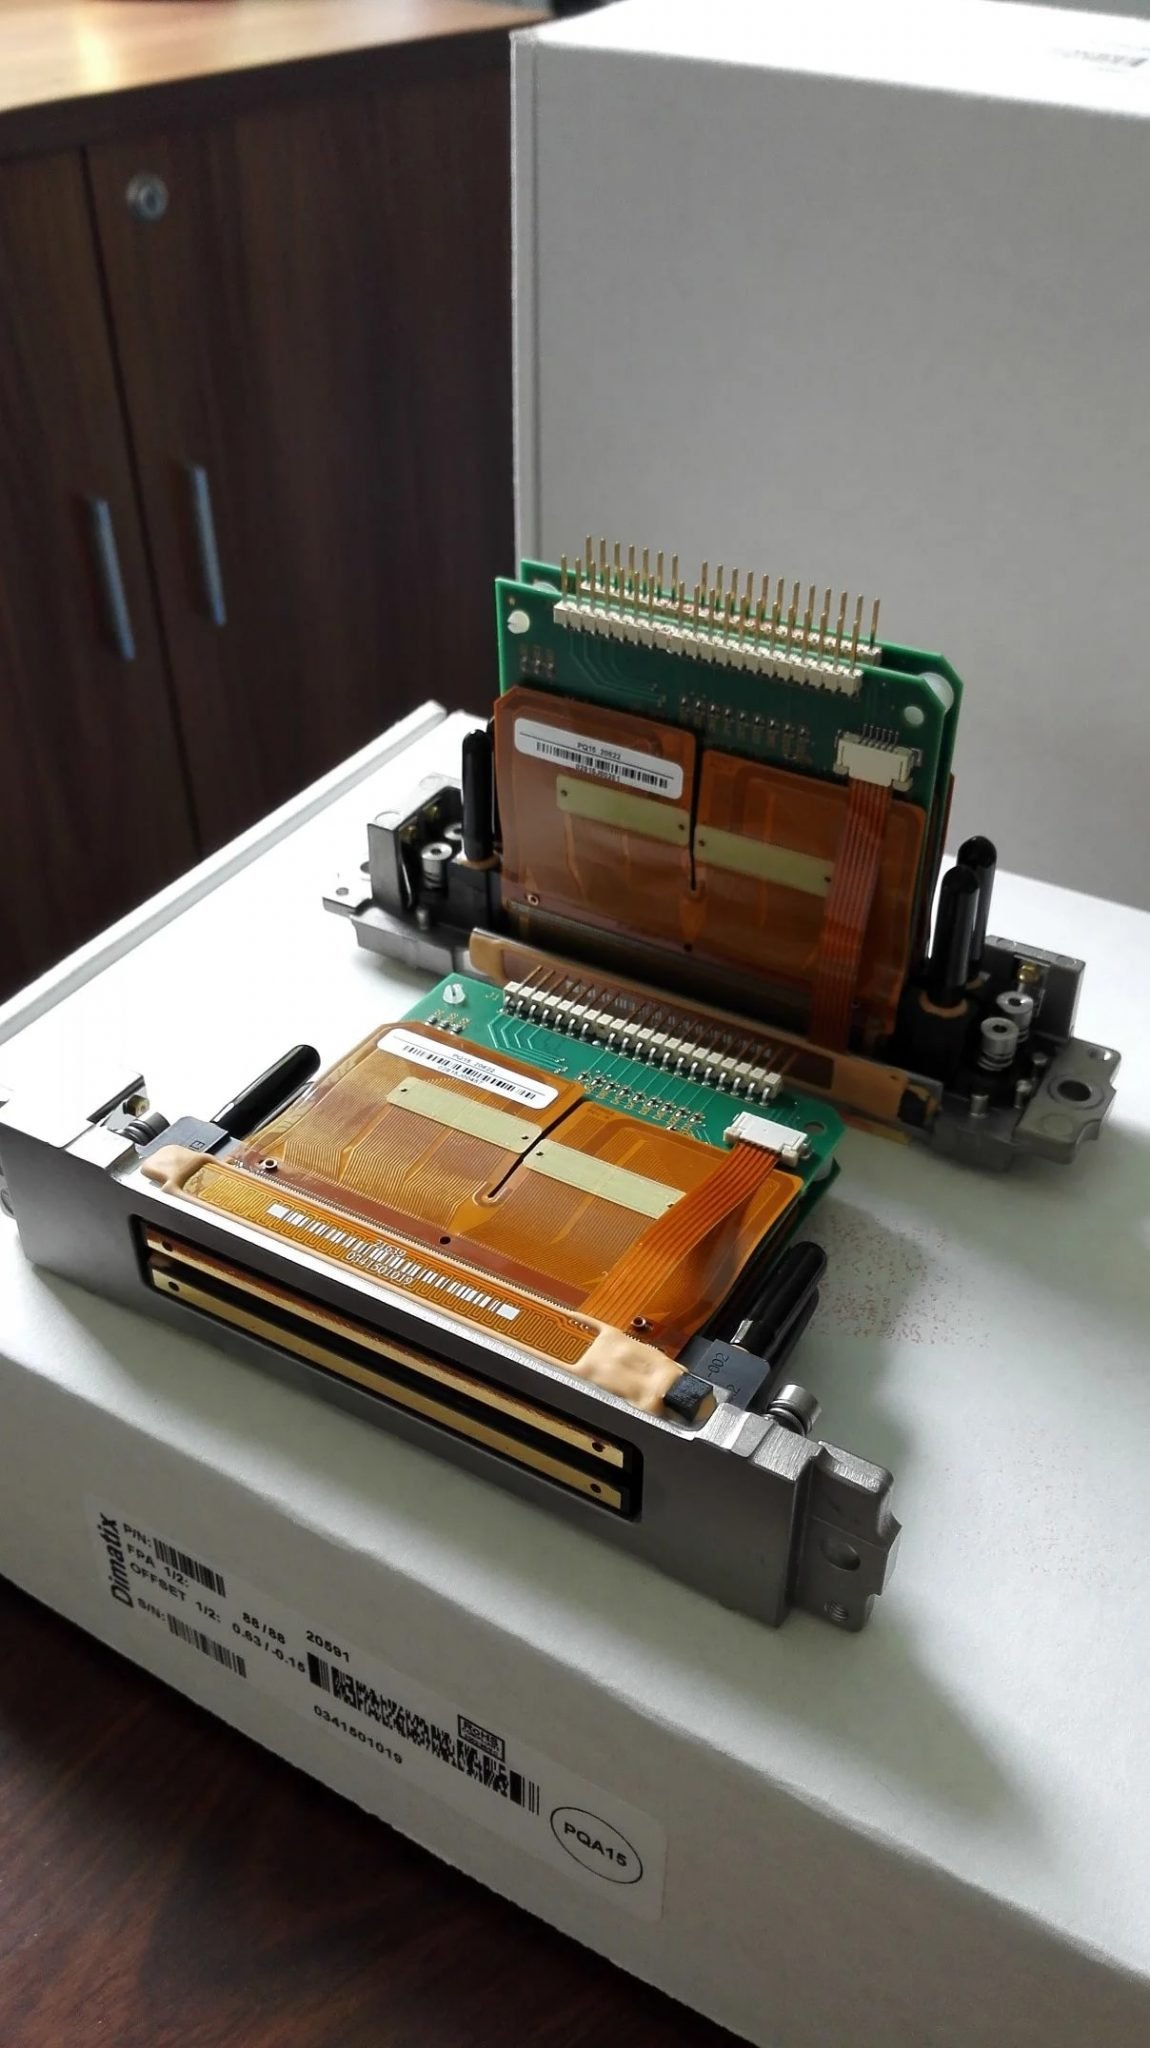 Media Printer Polaris PQ-512 (35PL) Series Printhead (www.media-printer.com)